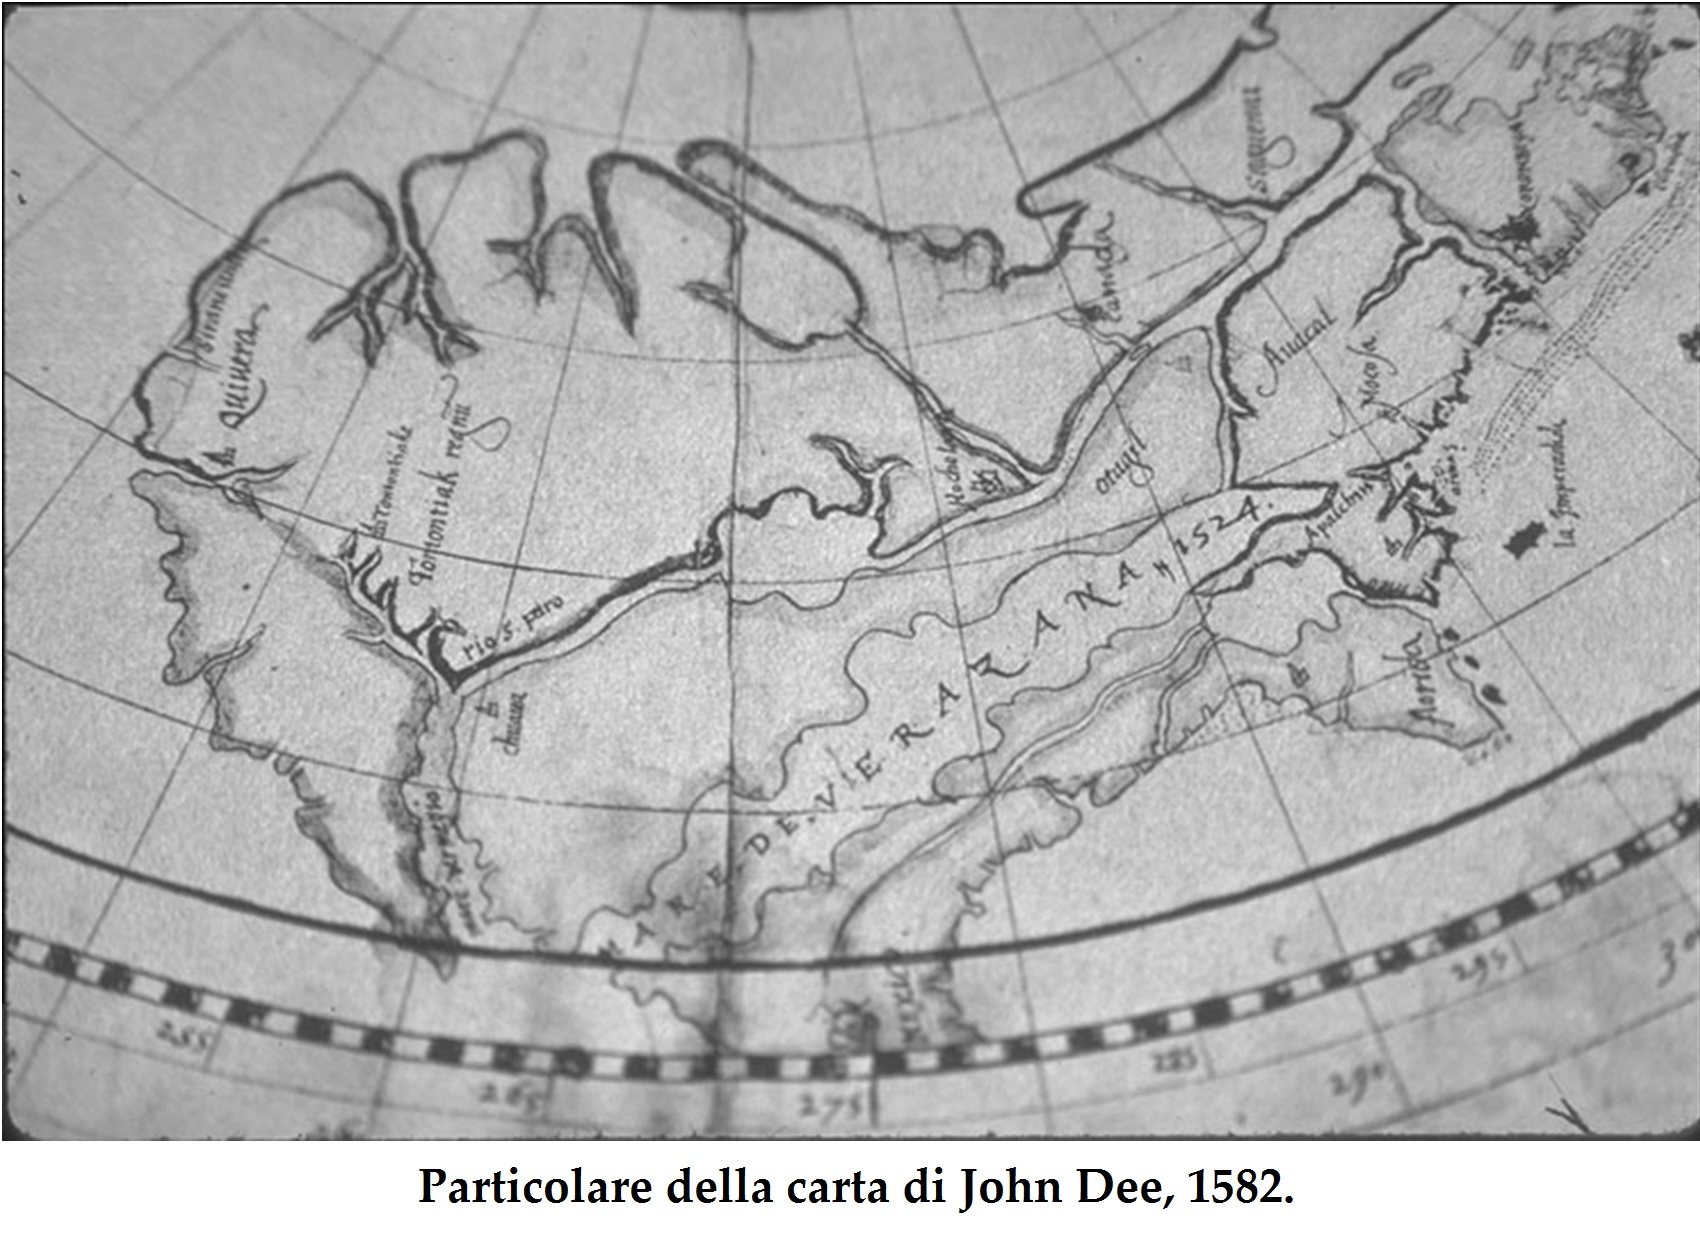 John Dee map detail